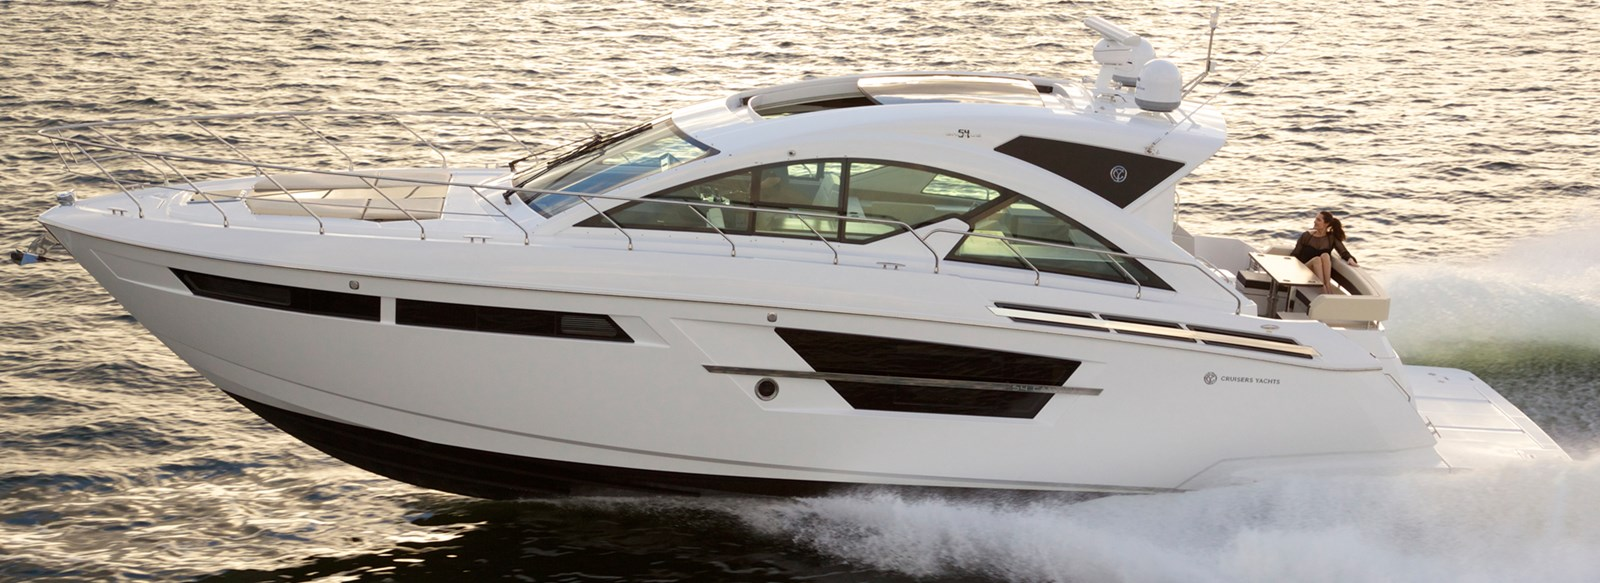 New Cruisers 54 Cantius Yachts For Sale